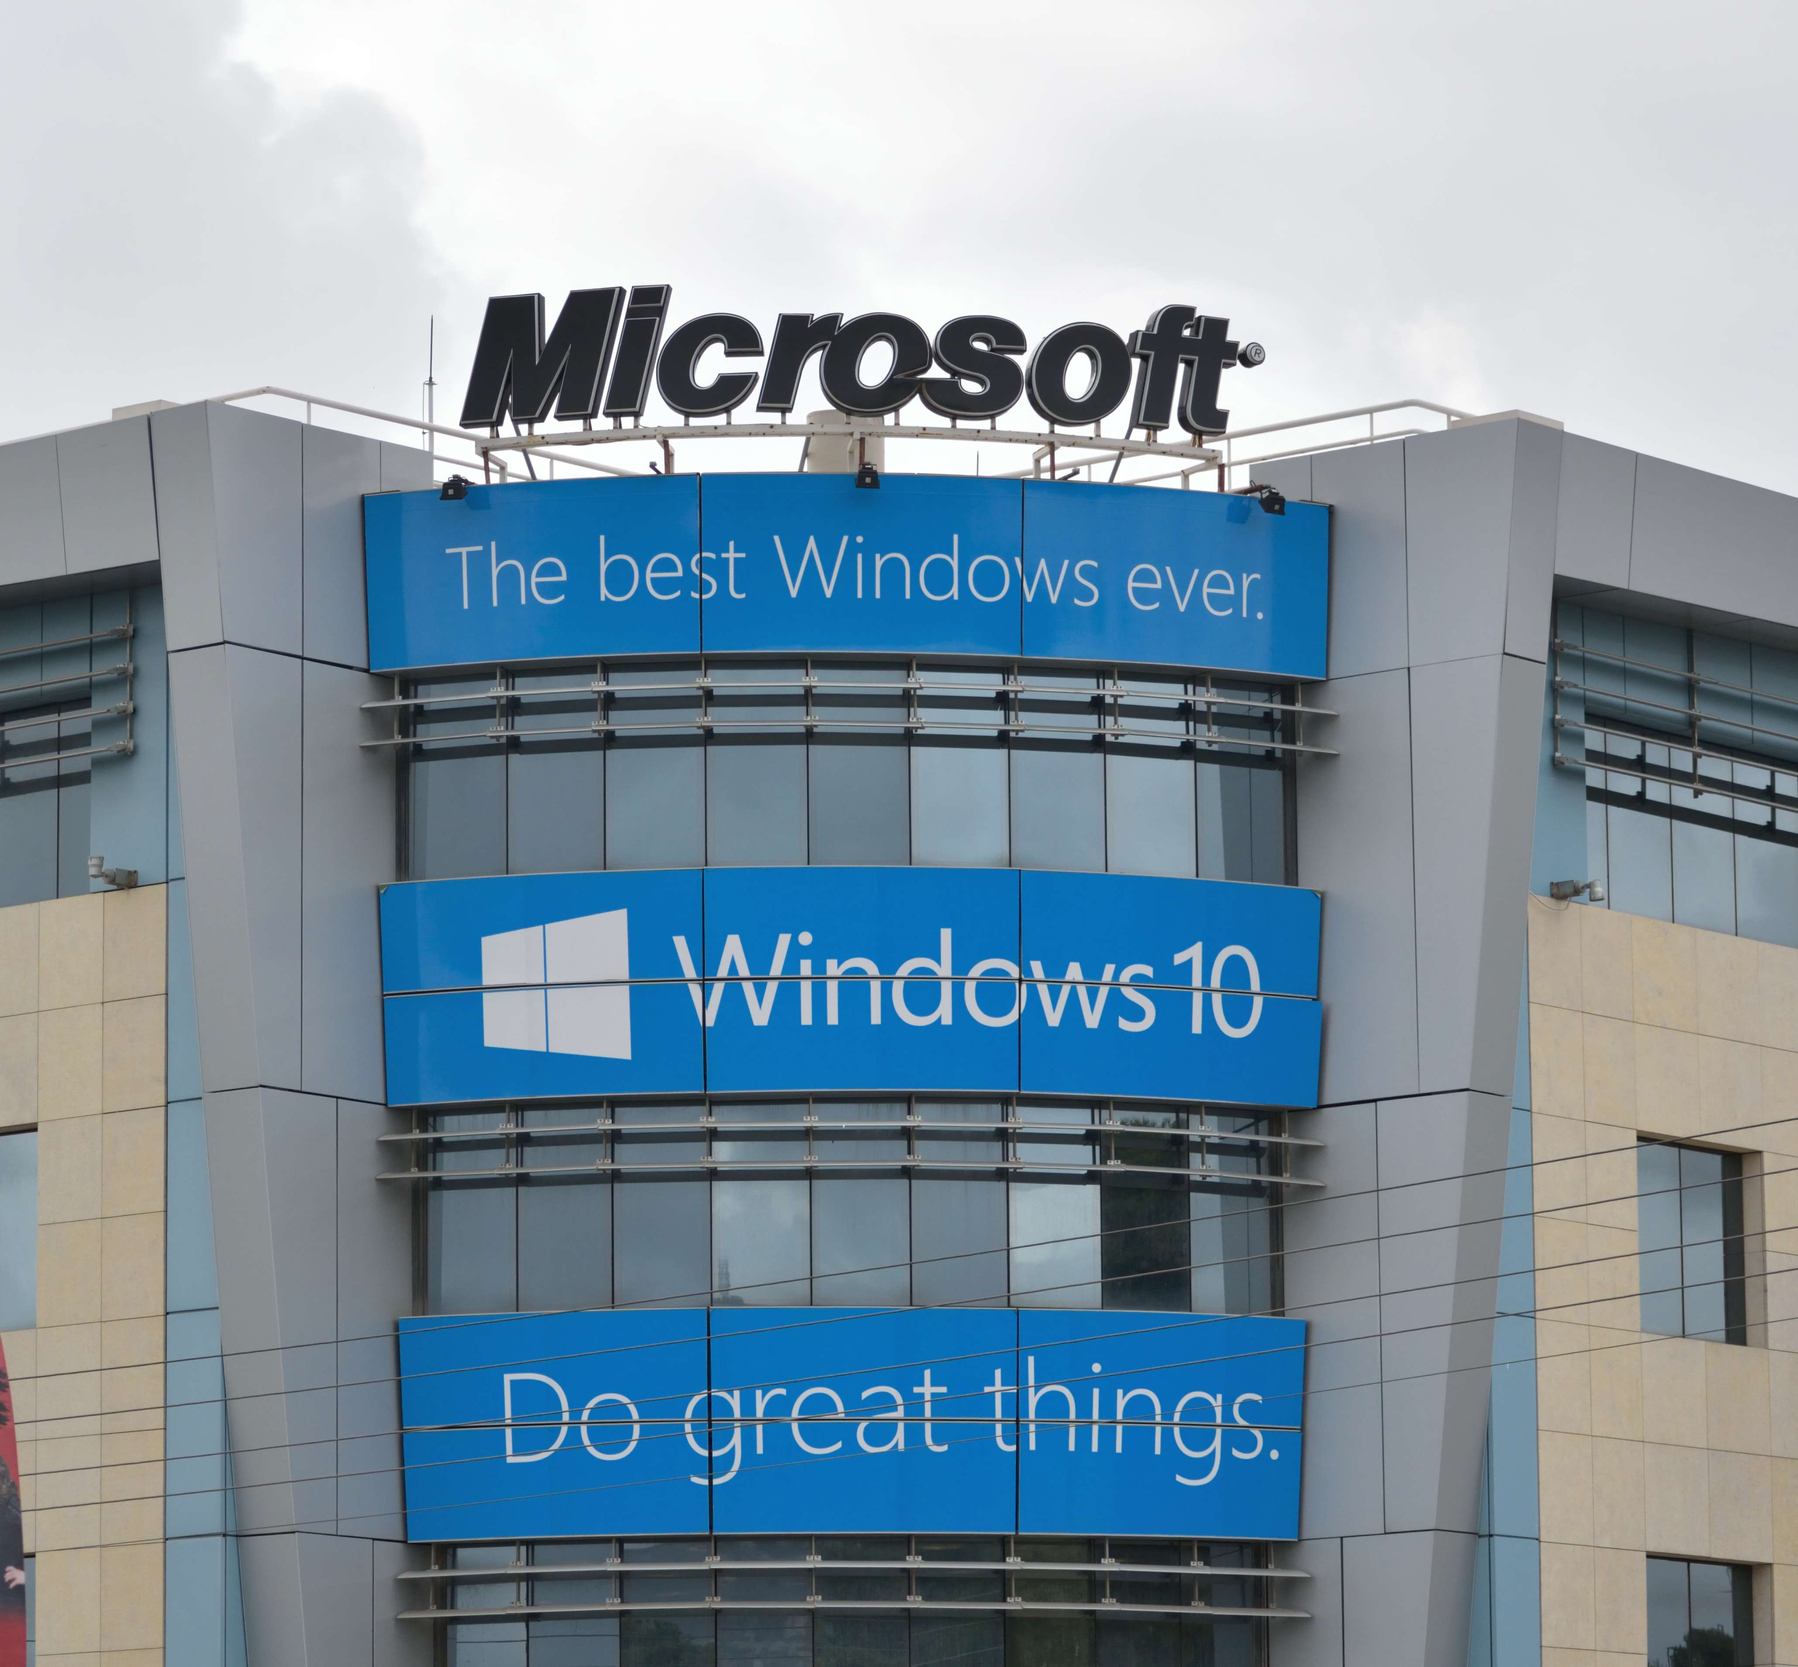 msft stock earnings  is a dividend increase on the horizon